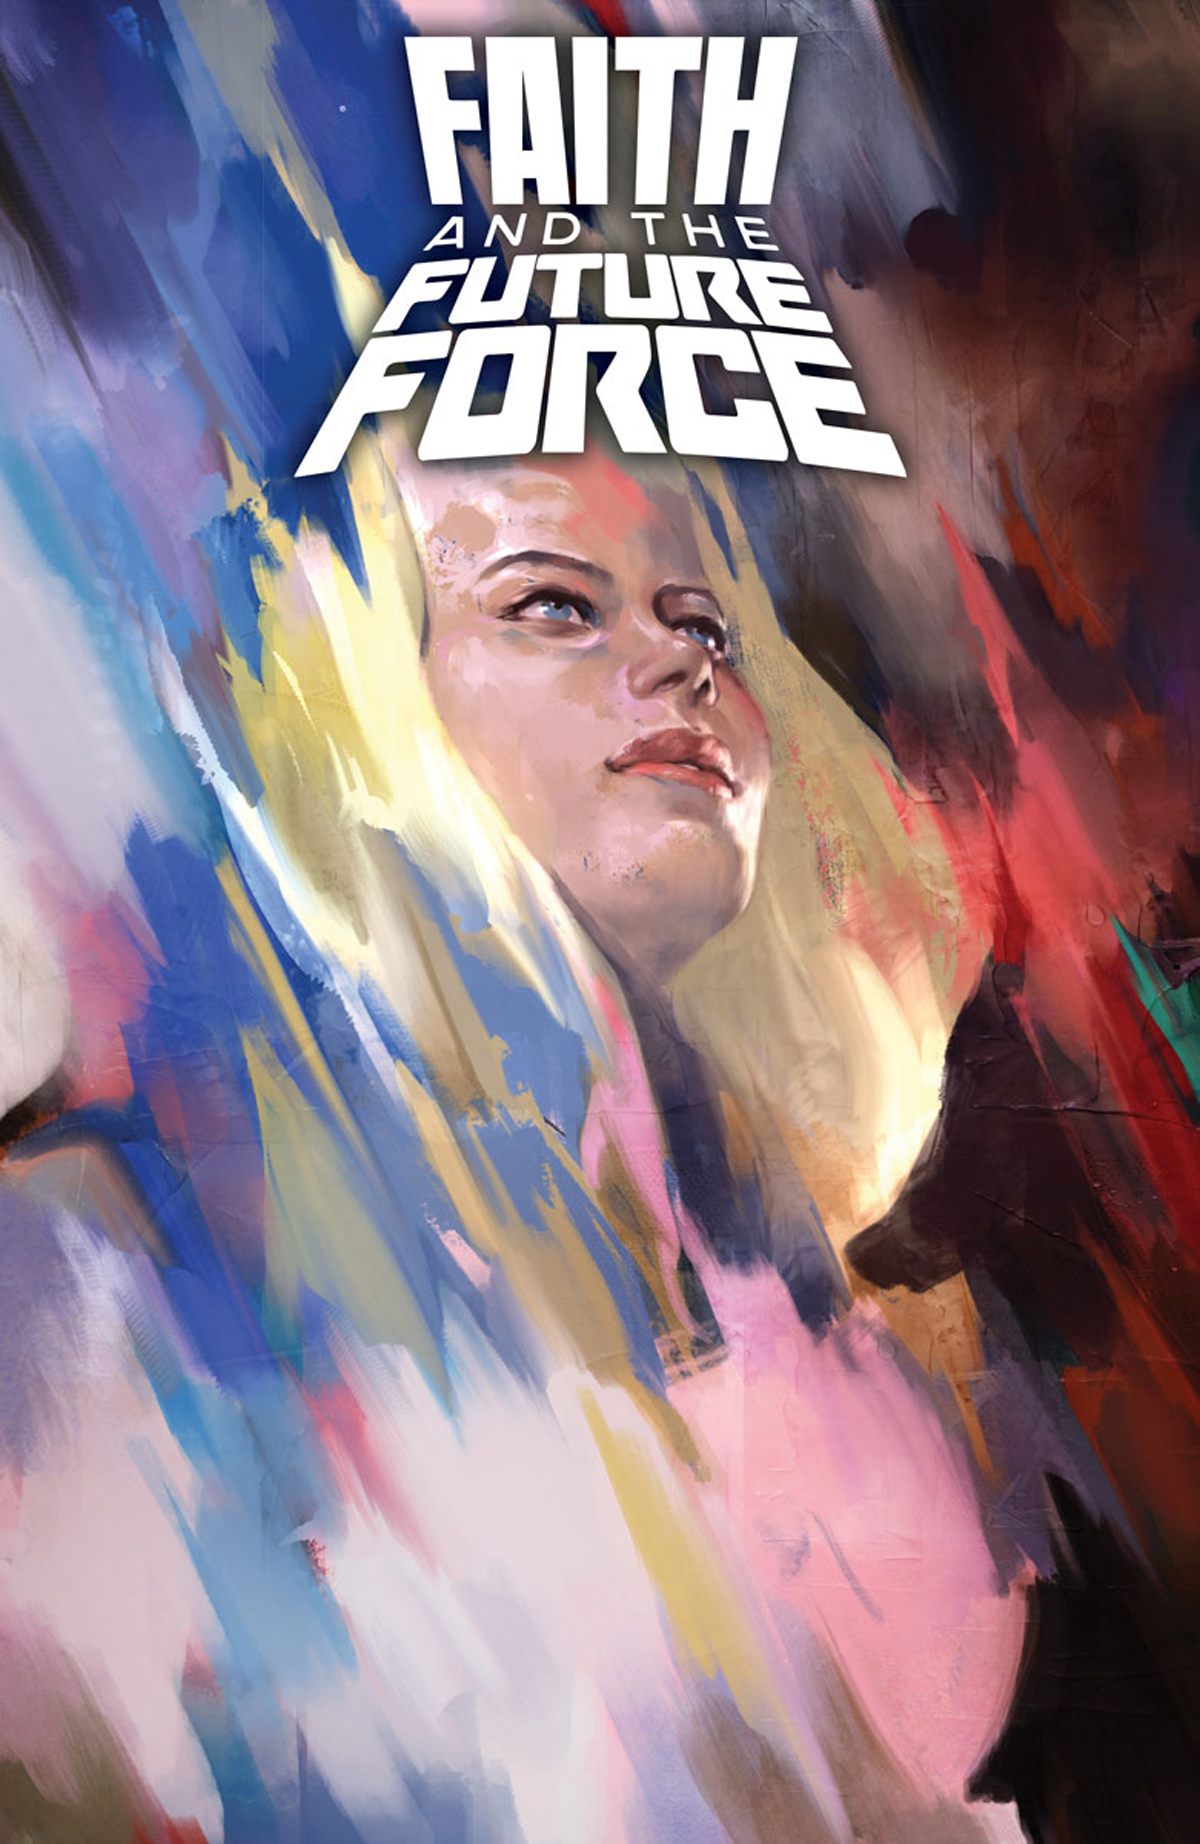 FAITH AND THE FUTURE FORCE #1 (OF 4) CVR A DJURDJEVIC